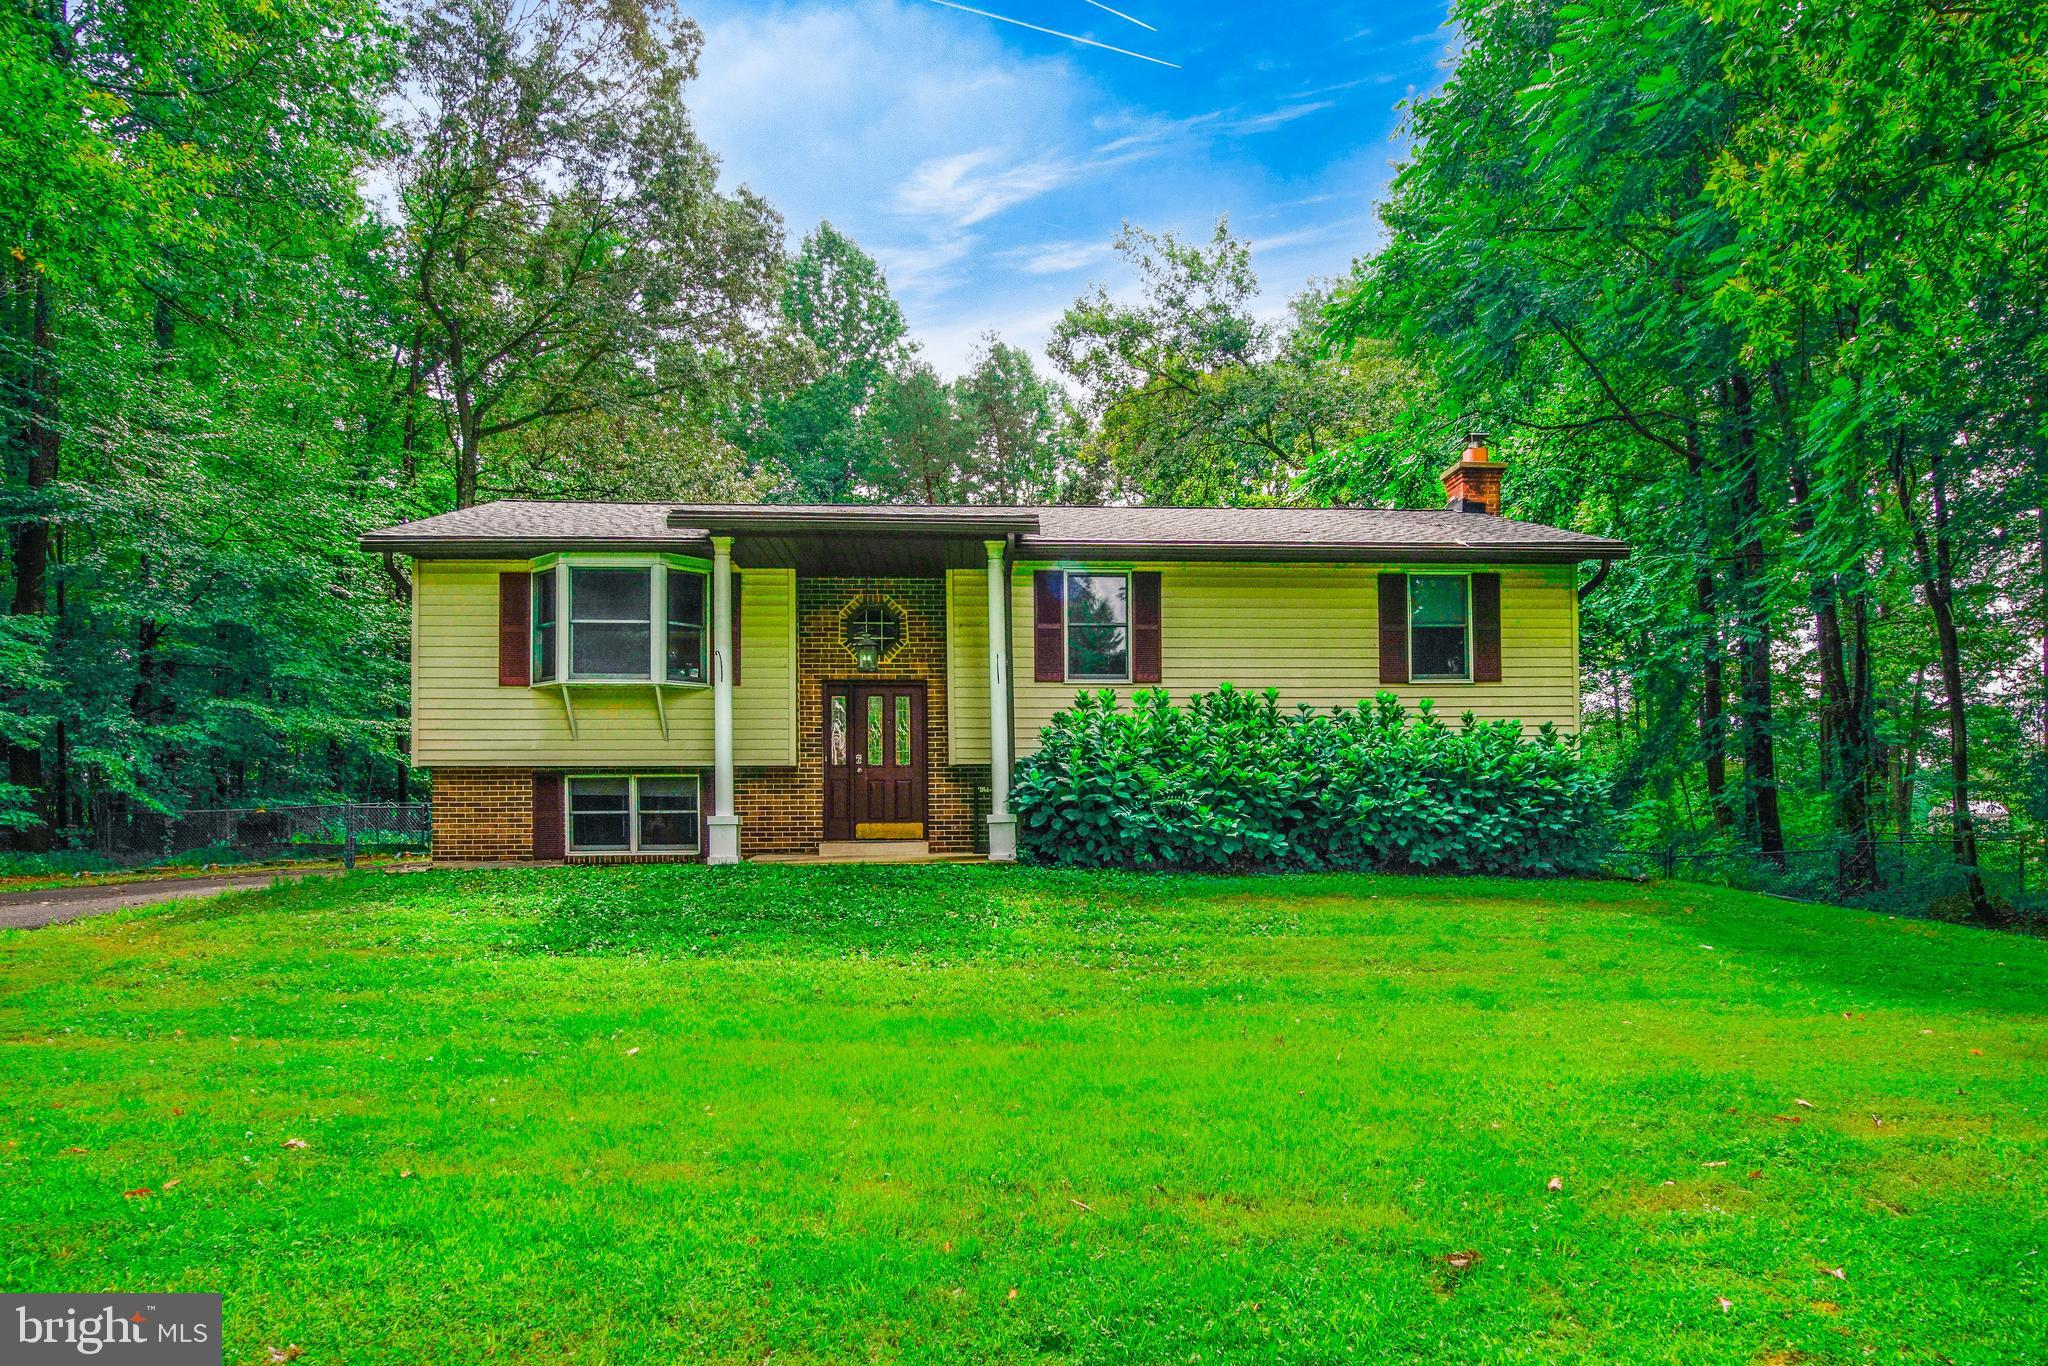 Beautifully updated 4bedroom, 3 bathroom home on a private, 1 acre lot in highly sought-after Huntin